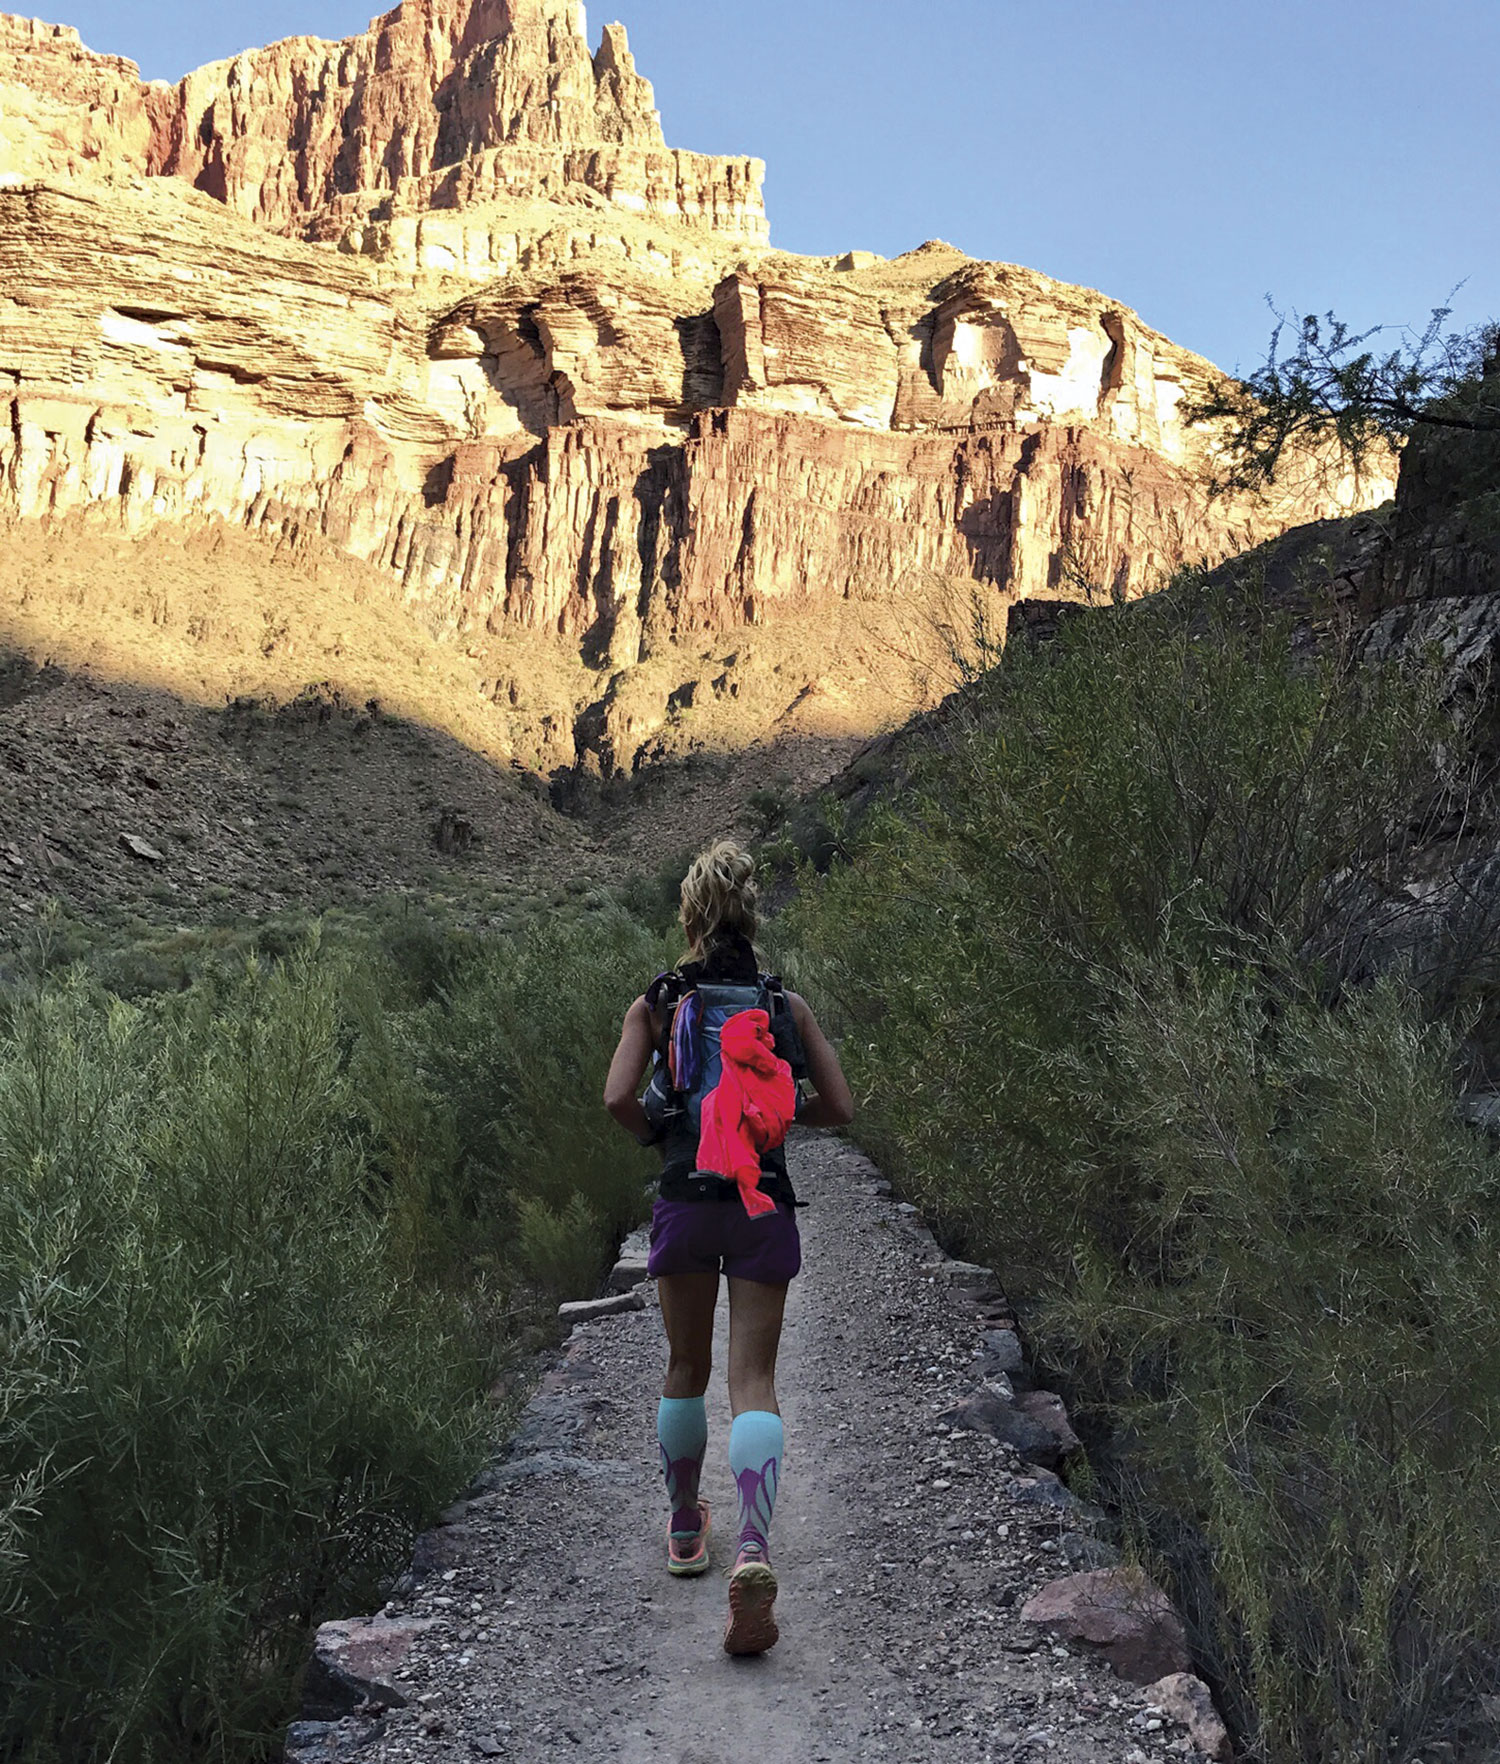 heading back to the South Rim